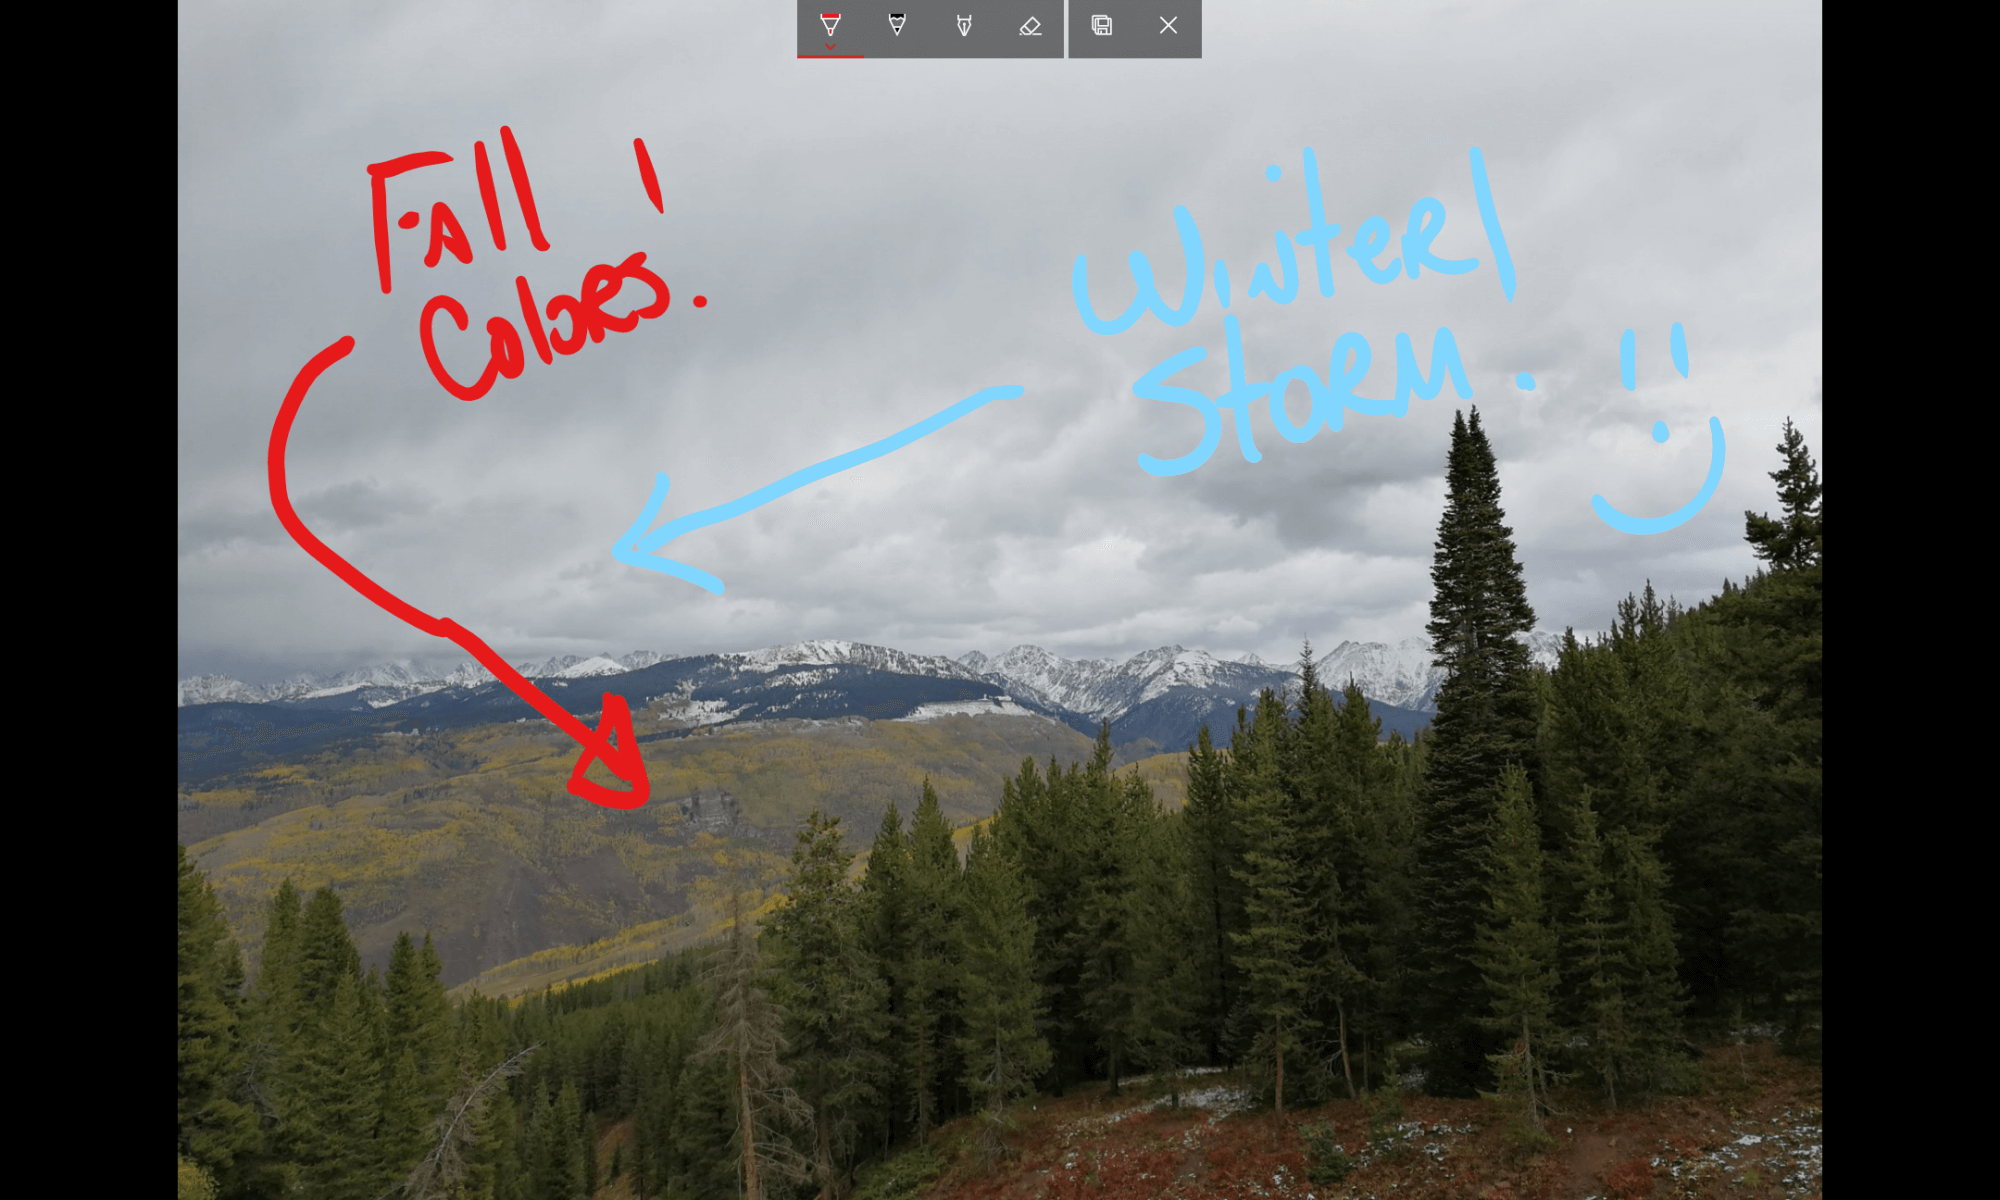 Drawing in Microsoft Photos